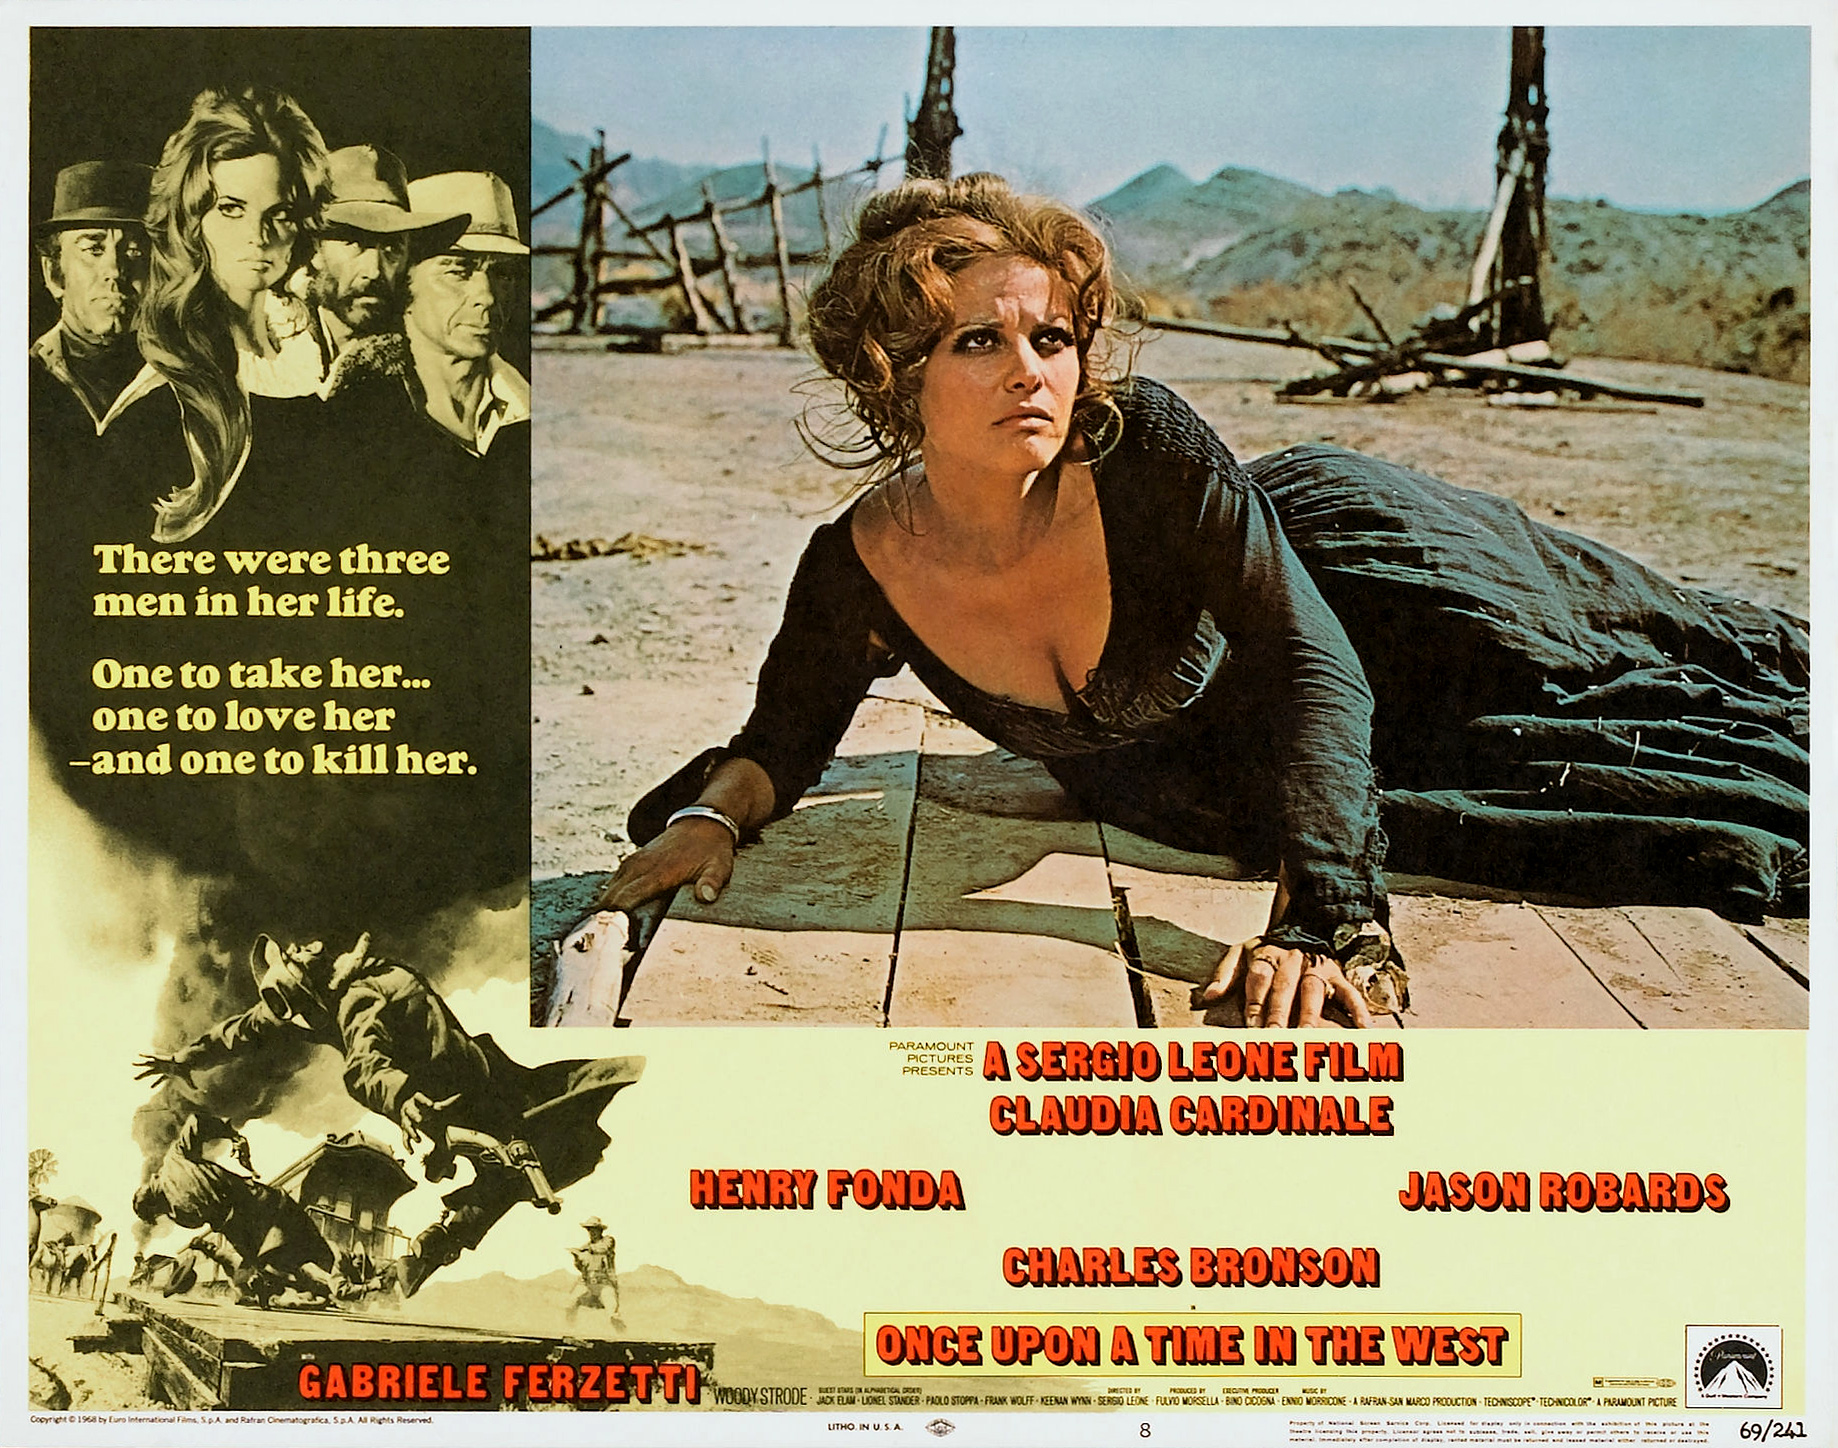 Once-Upon-a-Time-in-the-West-Lobby-card-featuring-Claudia-Cardinale-wallpaper-wp428123-1